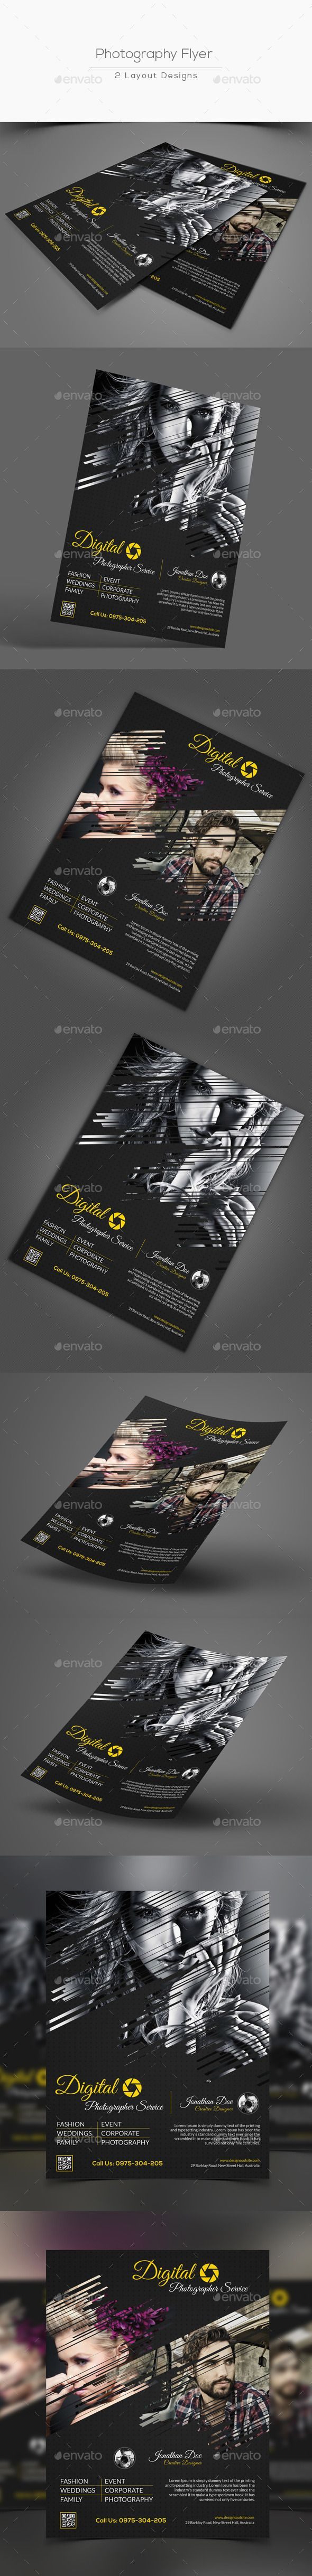 Photography Flyer Template PSD #design Download: http://graphicriver.net/item/photography-flyer/12945438?ref=ksioks